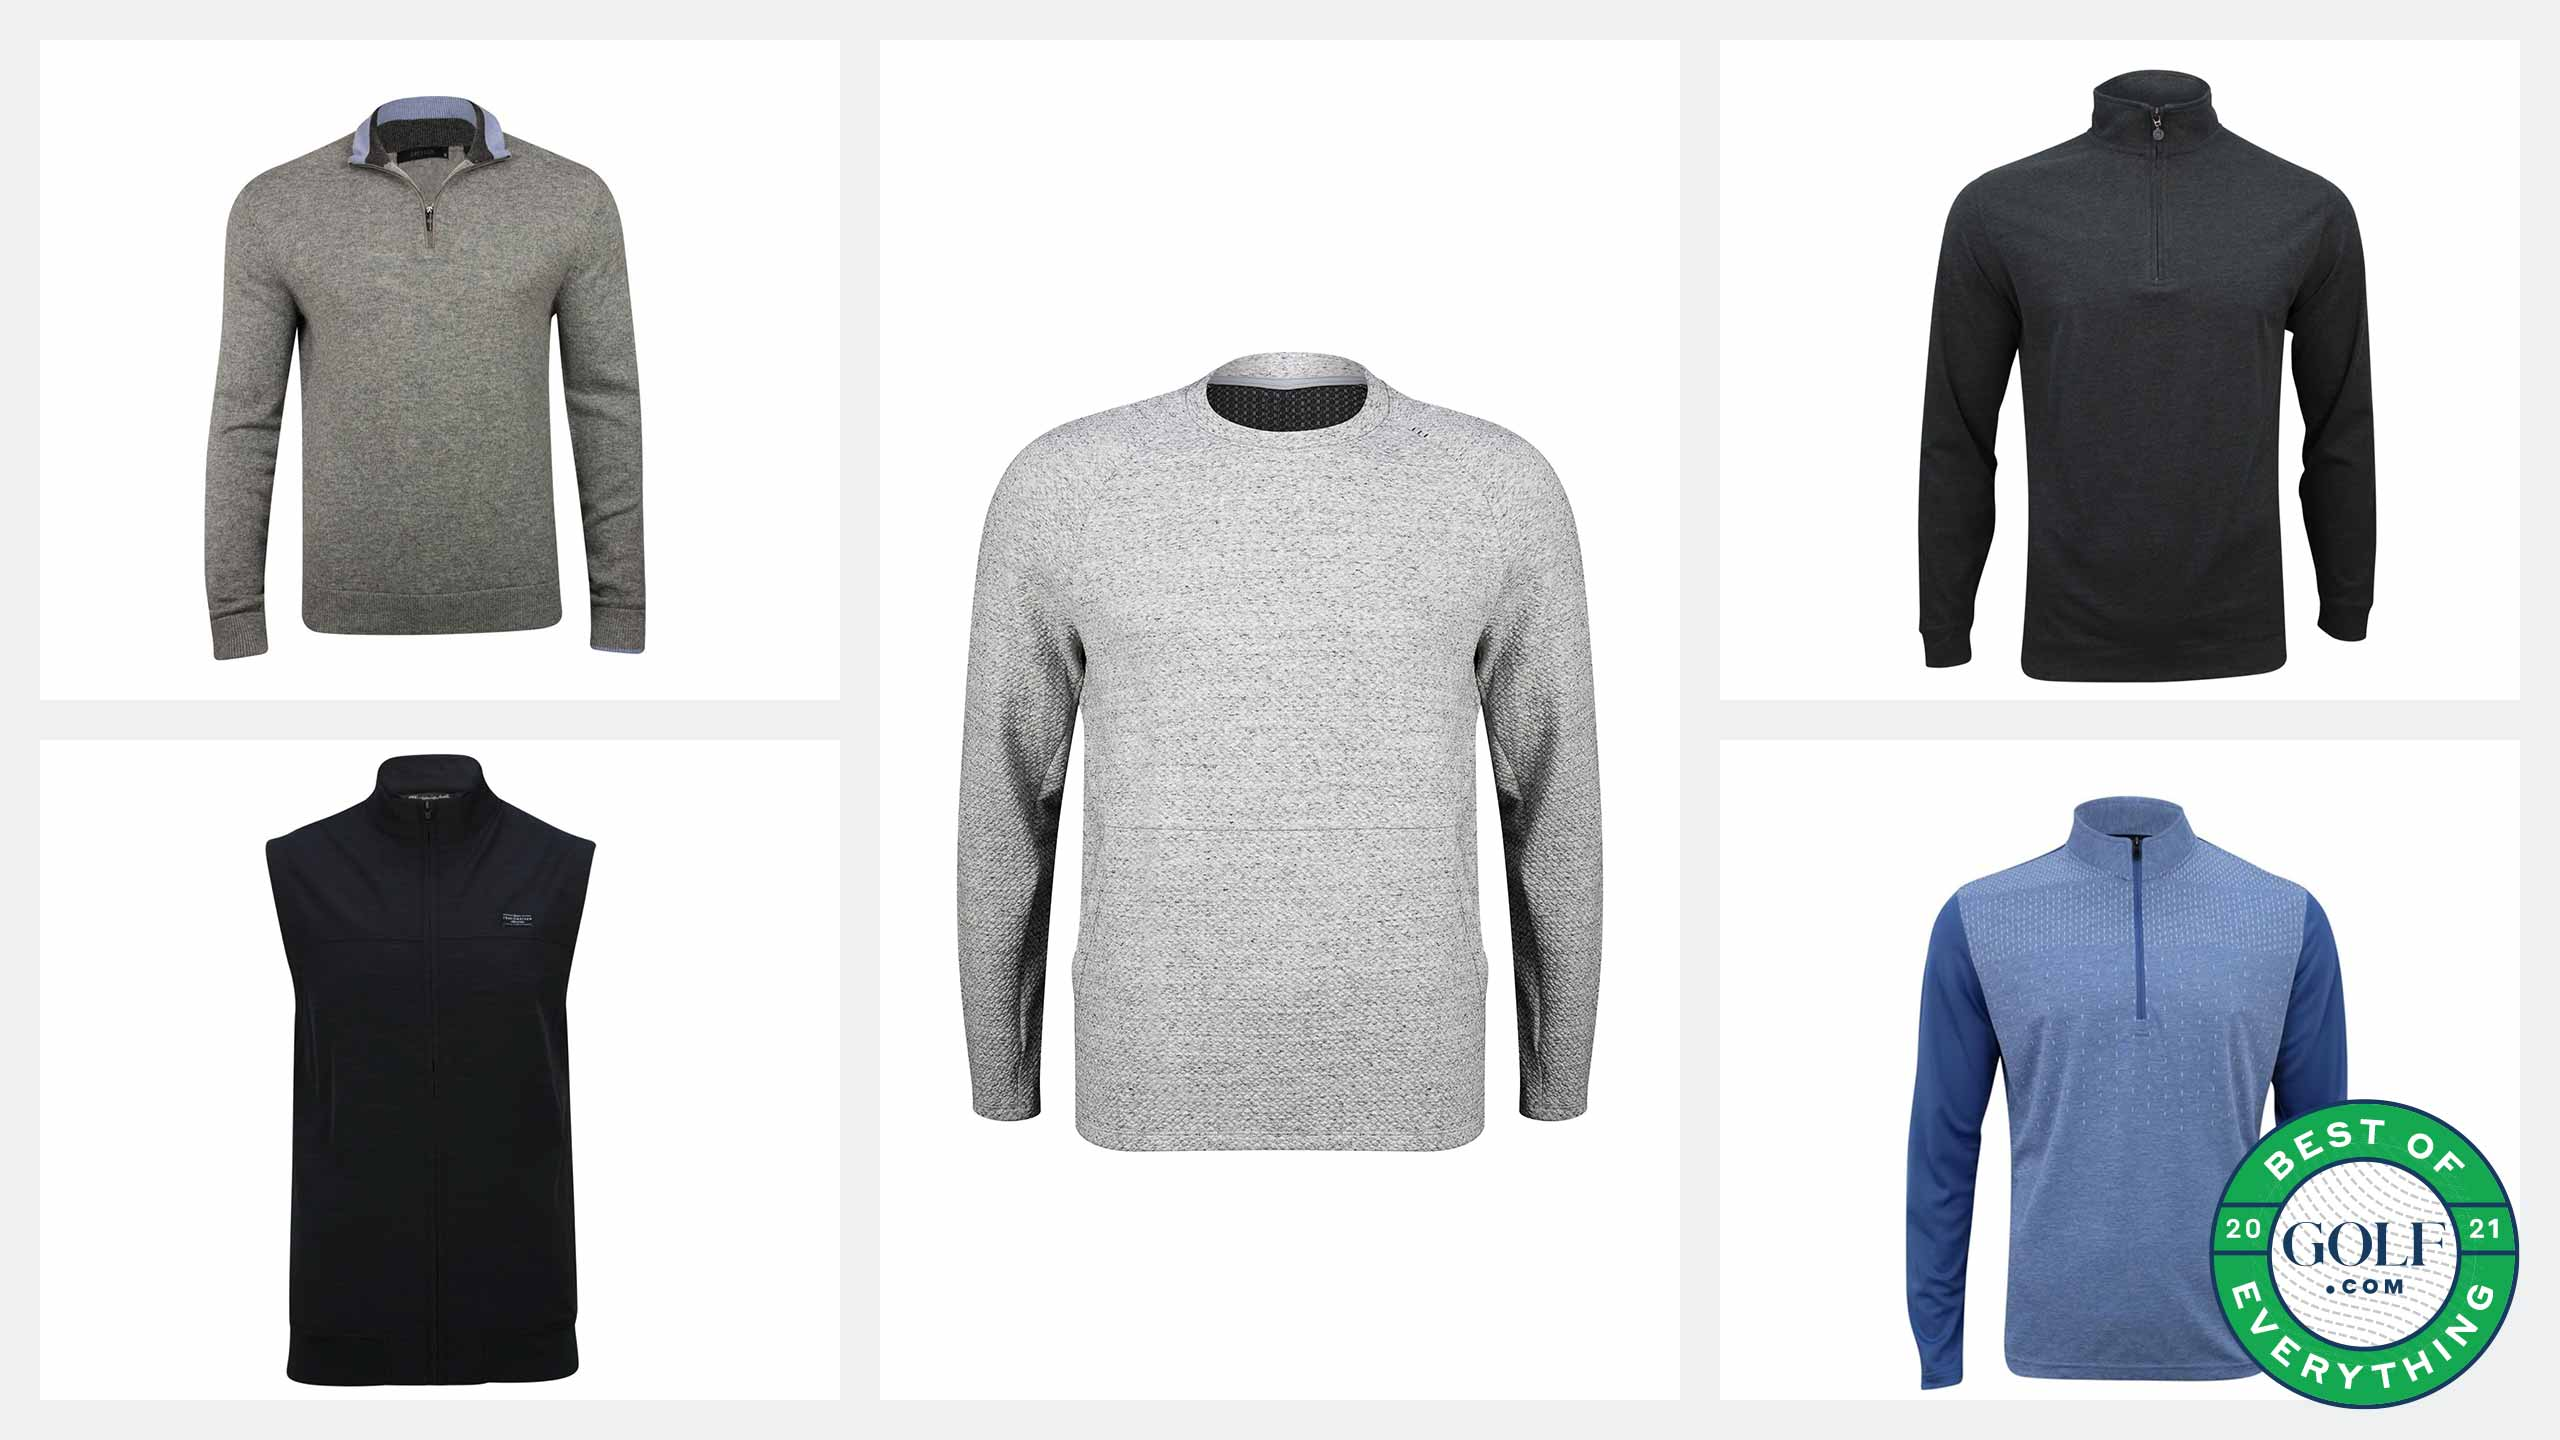 Best golf layering items